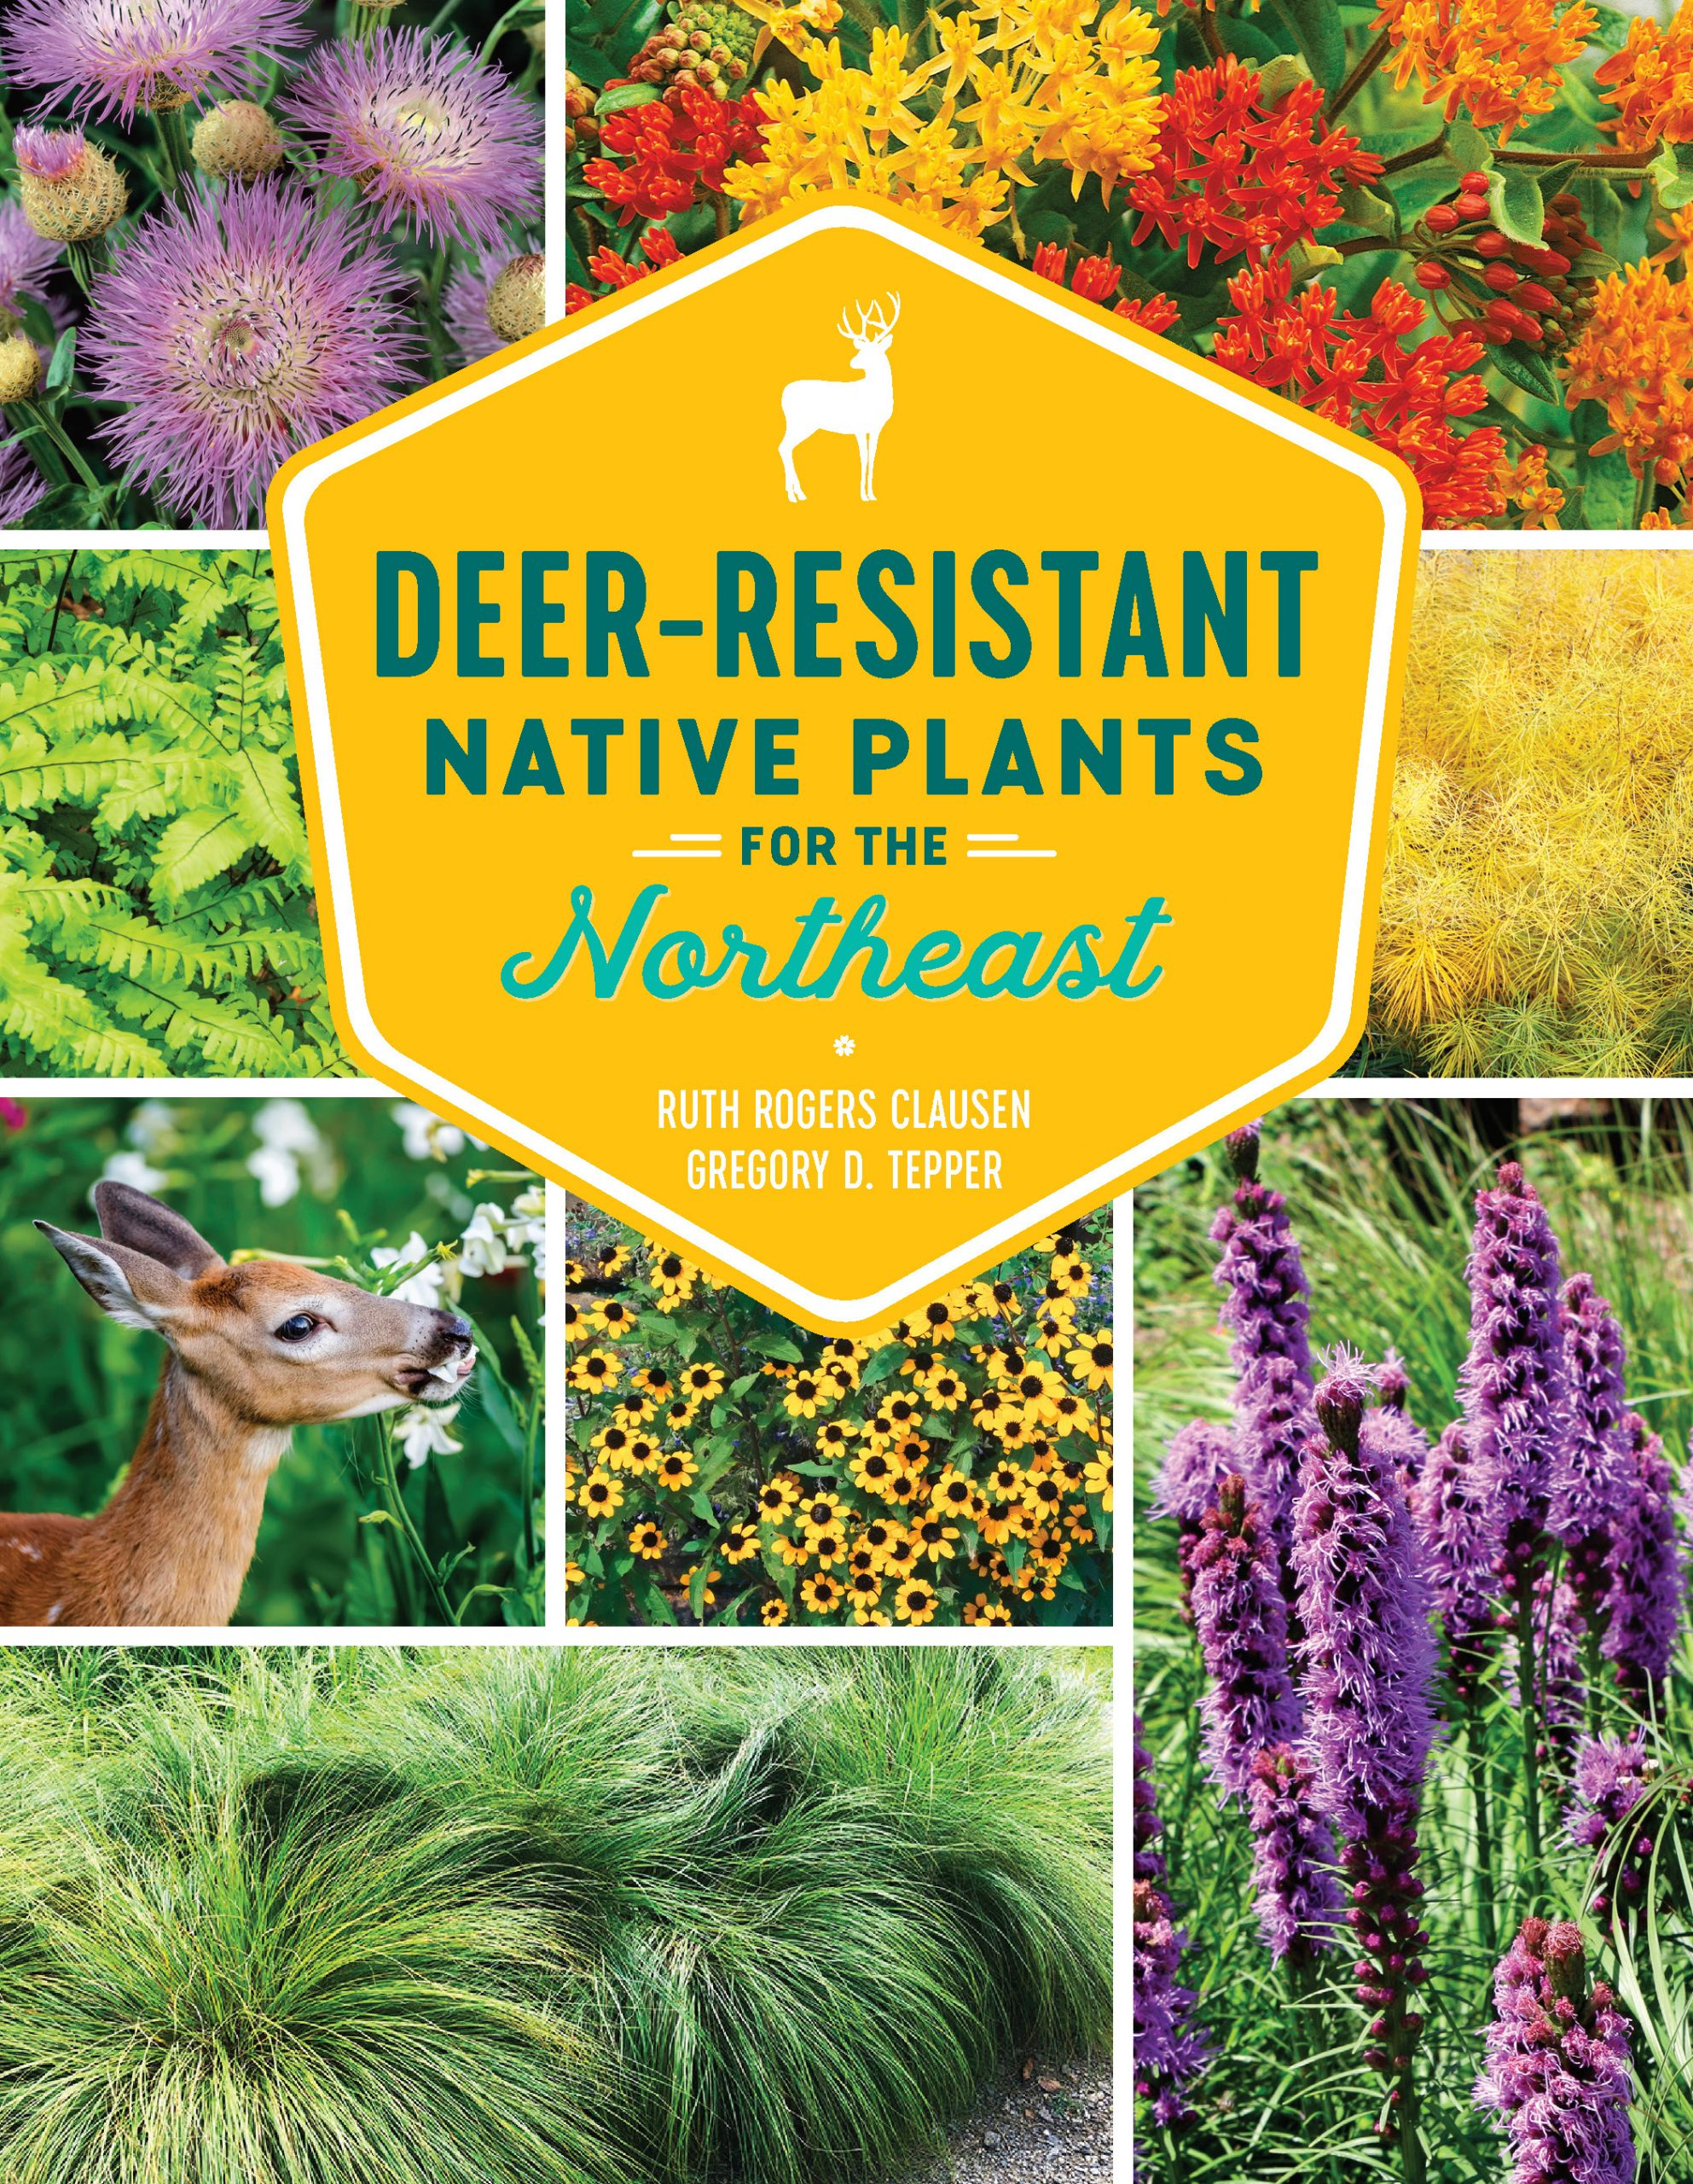 Deer-Resistant Native Plants for the NE - Cover